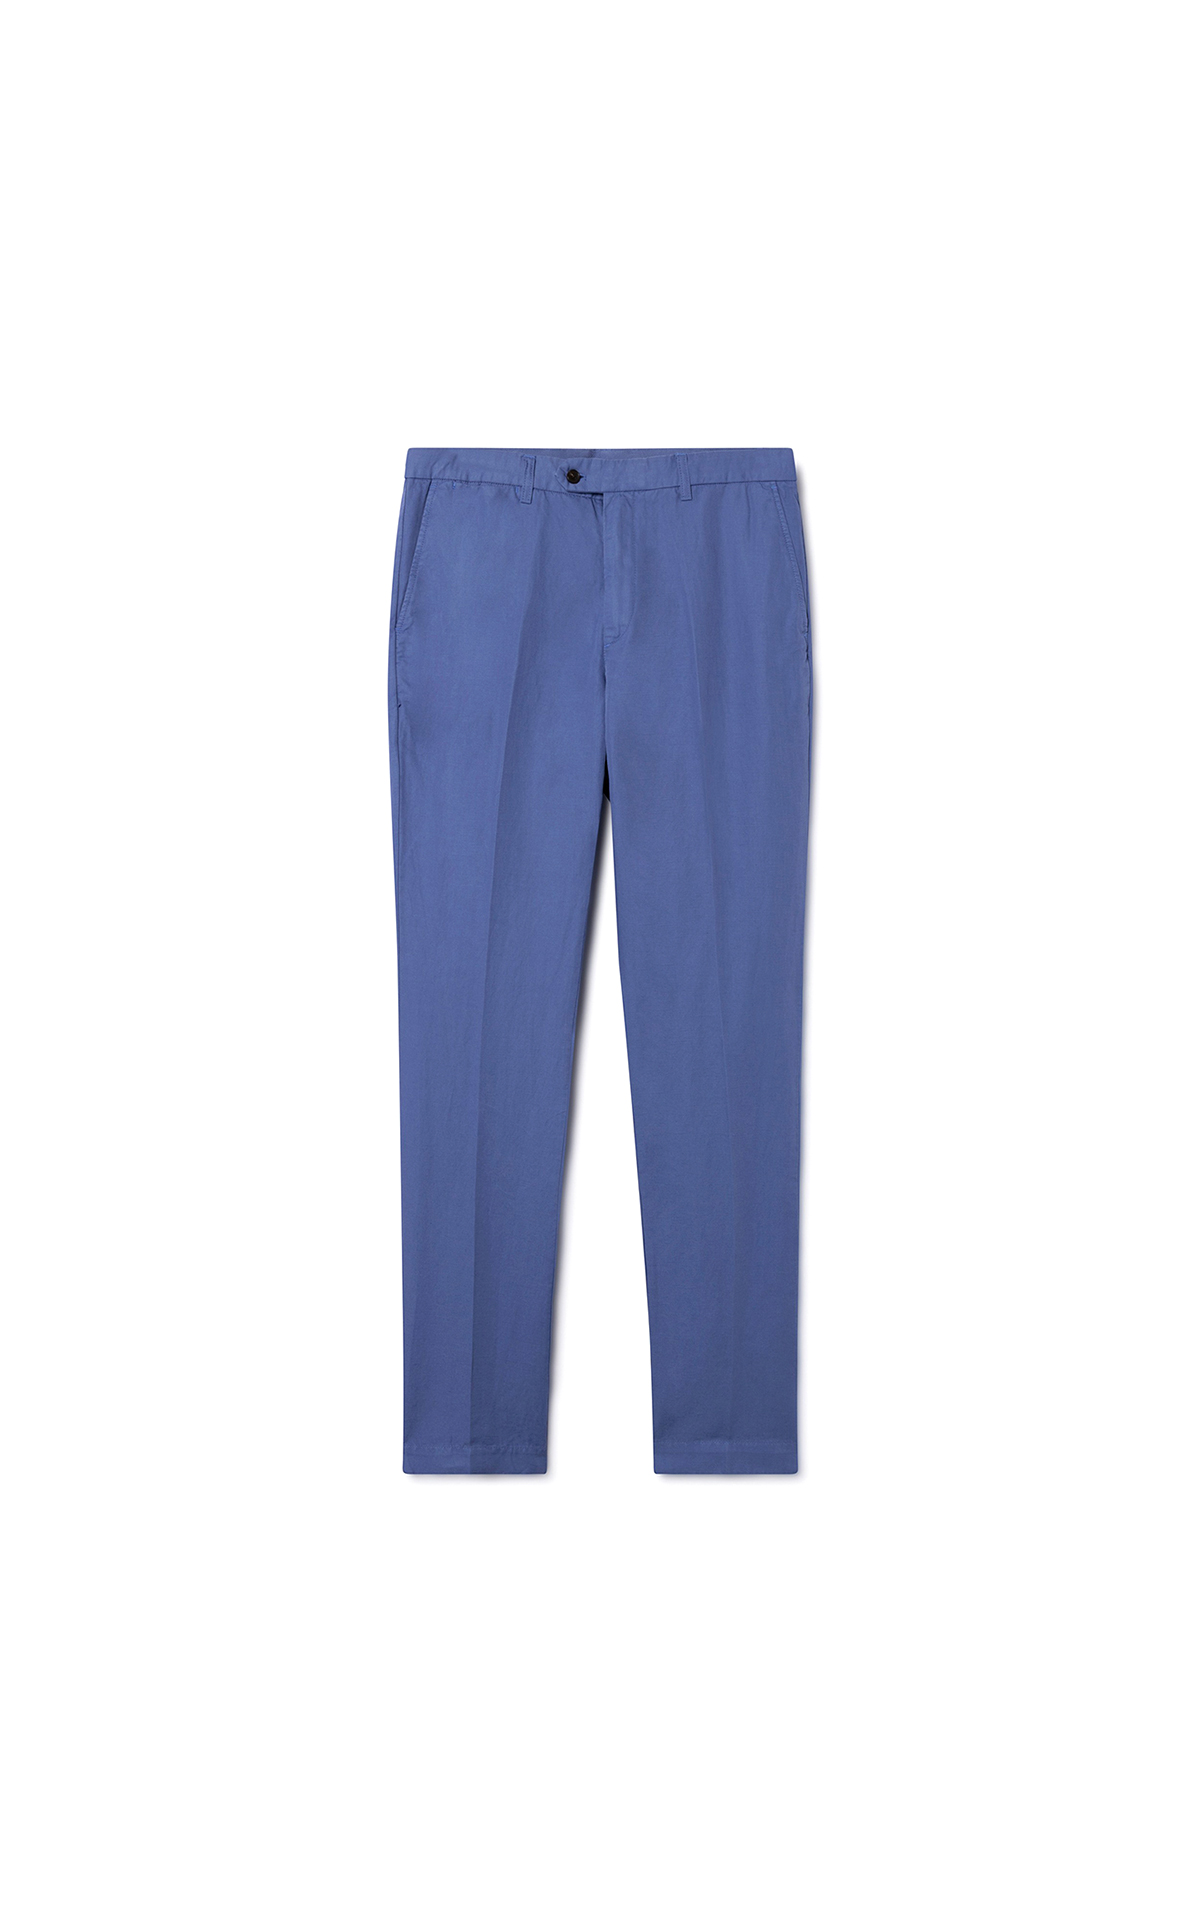 Hackett London blue pants La Vallée Village